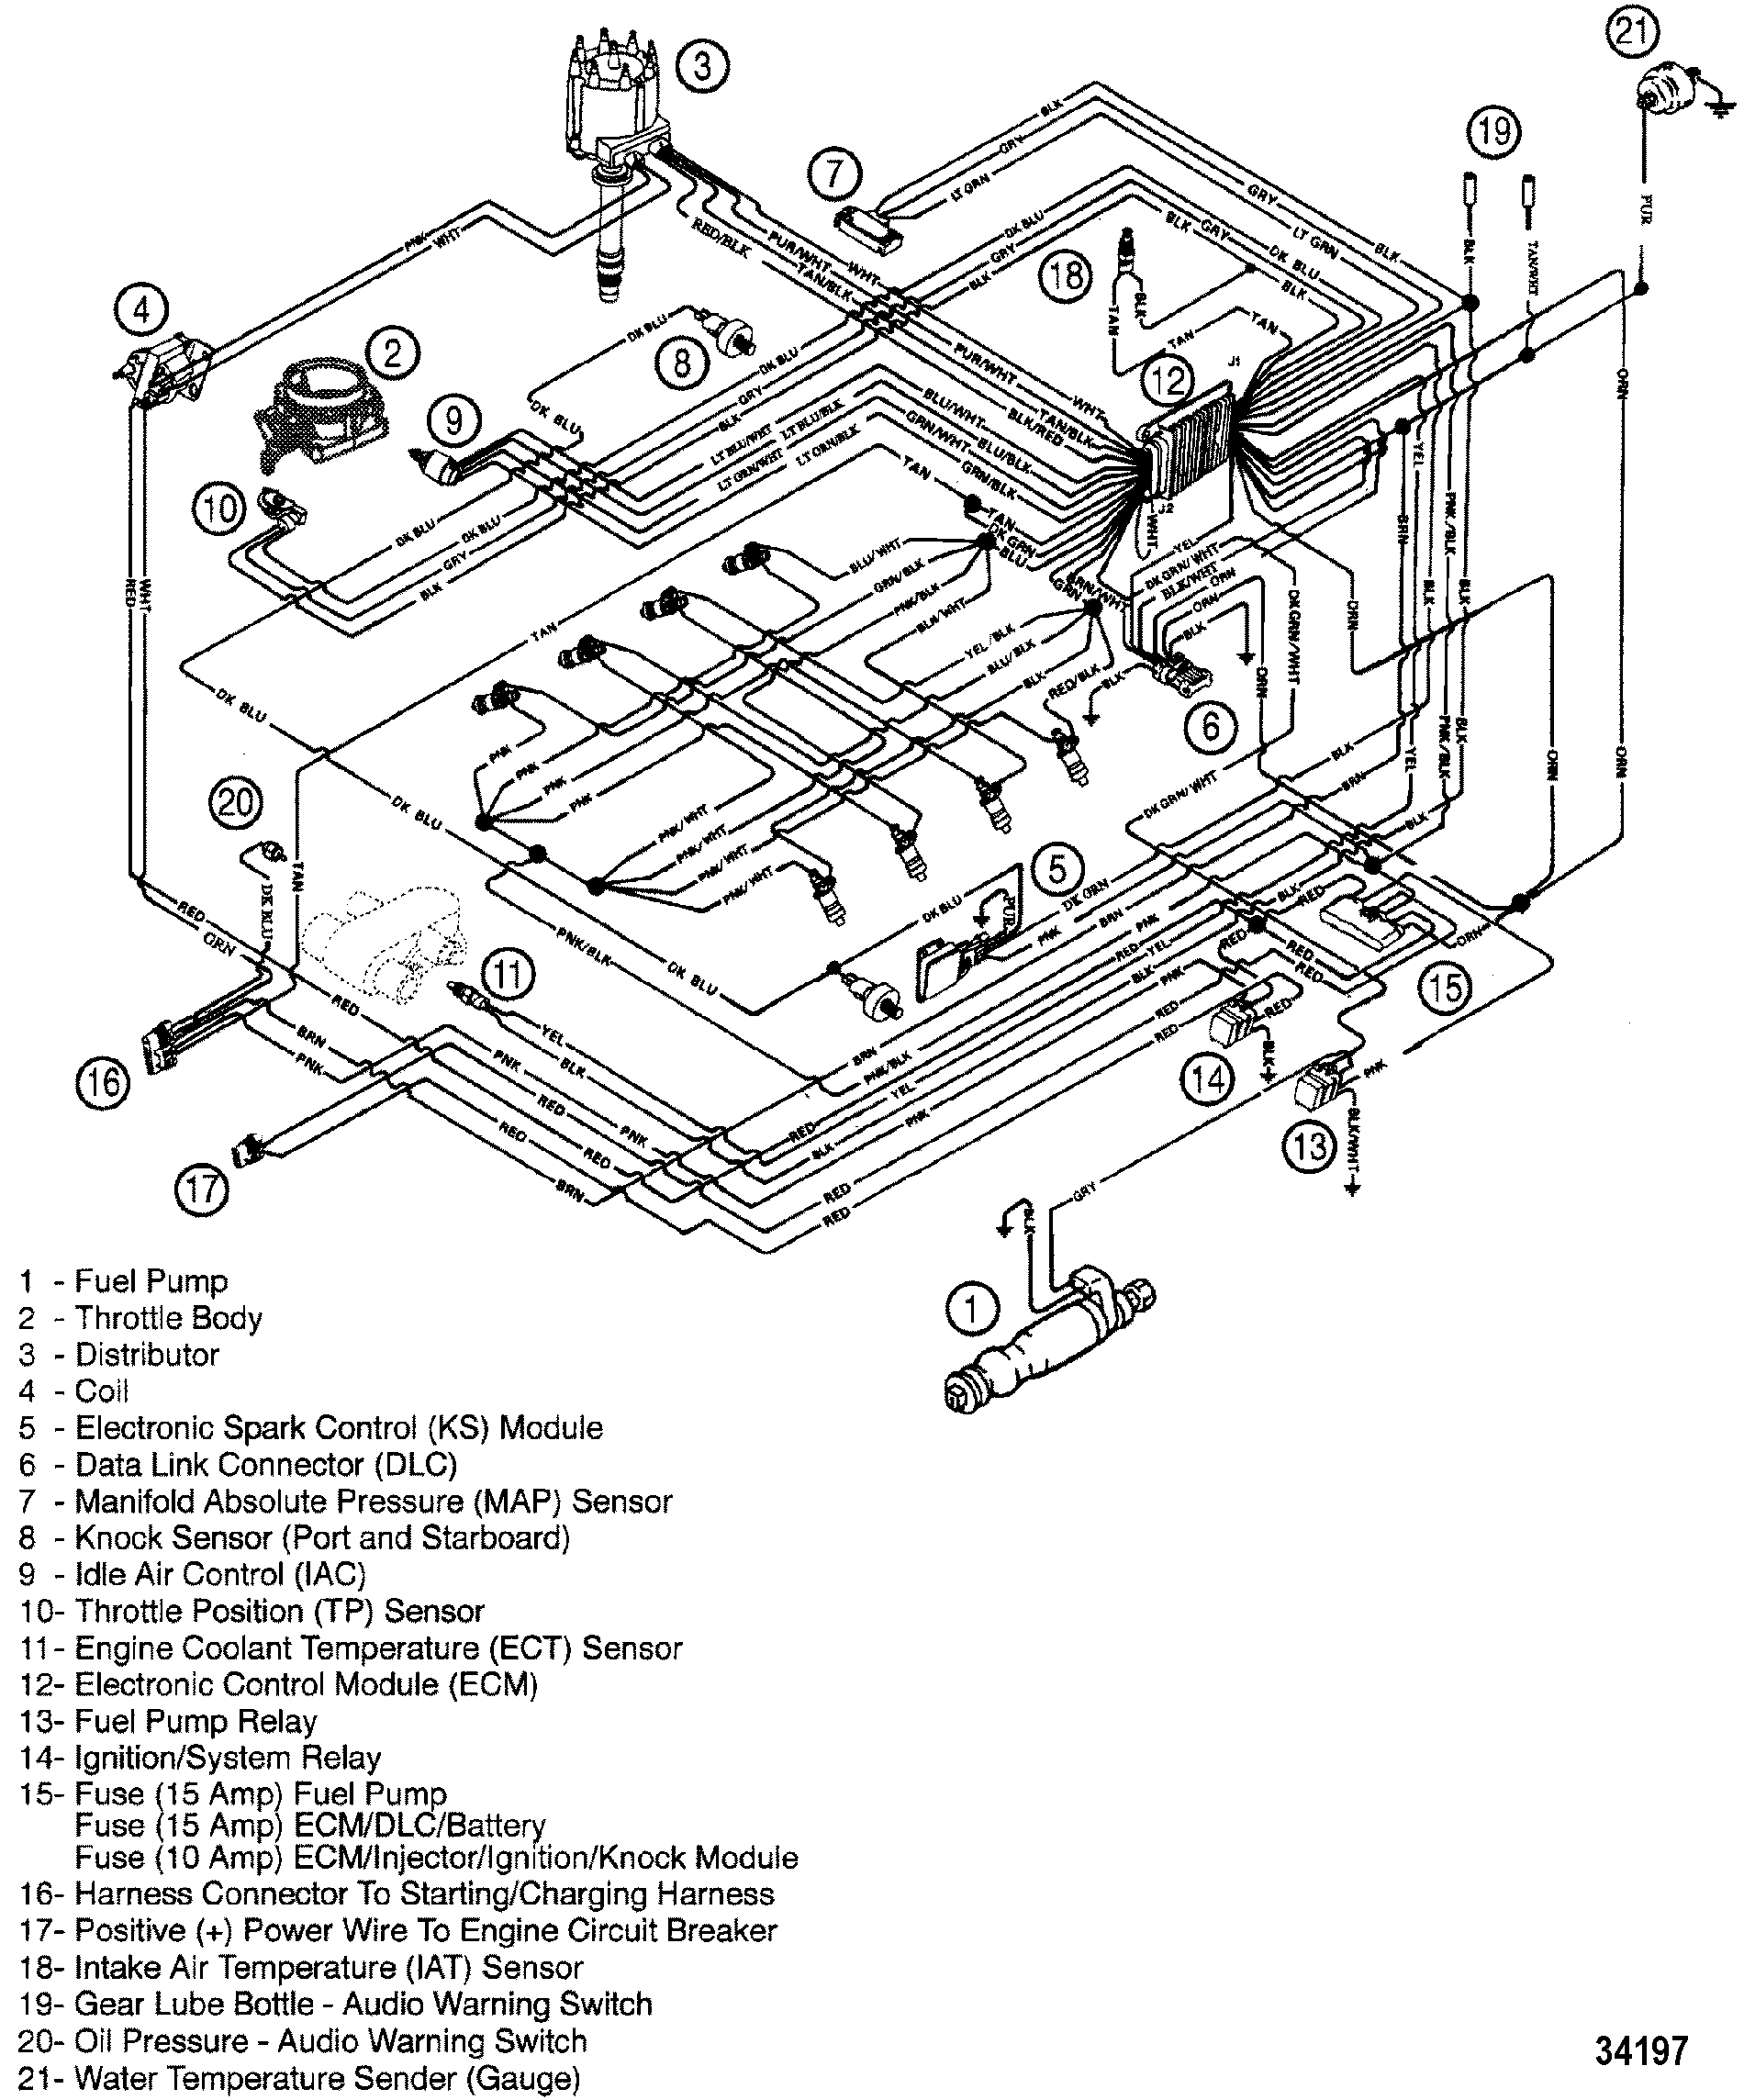 34197 mercruiser wiring diagram mercruiser alternator wiring diagram mercruiser thunderbolt 4 wiring diagram at crackthecode.co